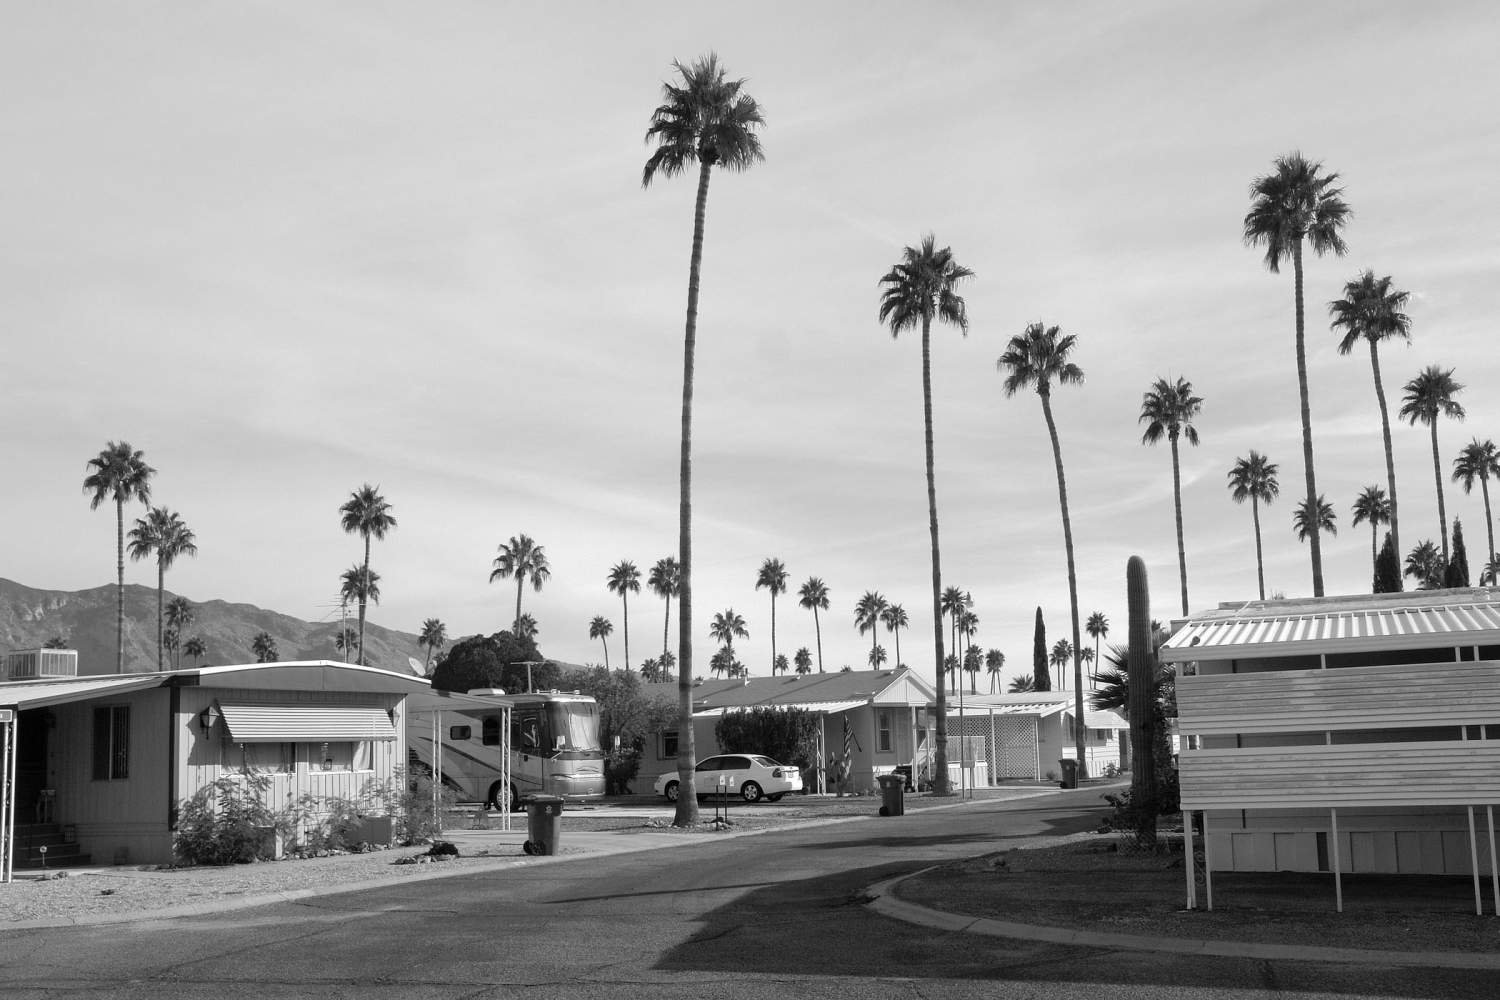 >Bungalow homes and palm trees in Tucson, Arizona.